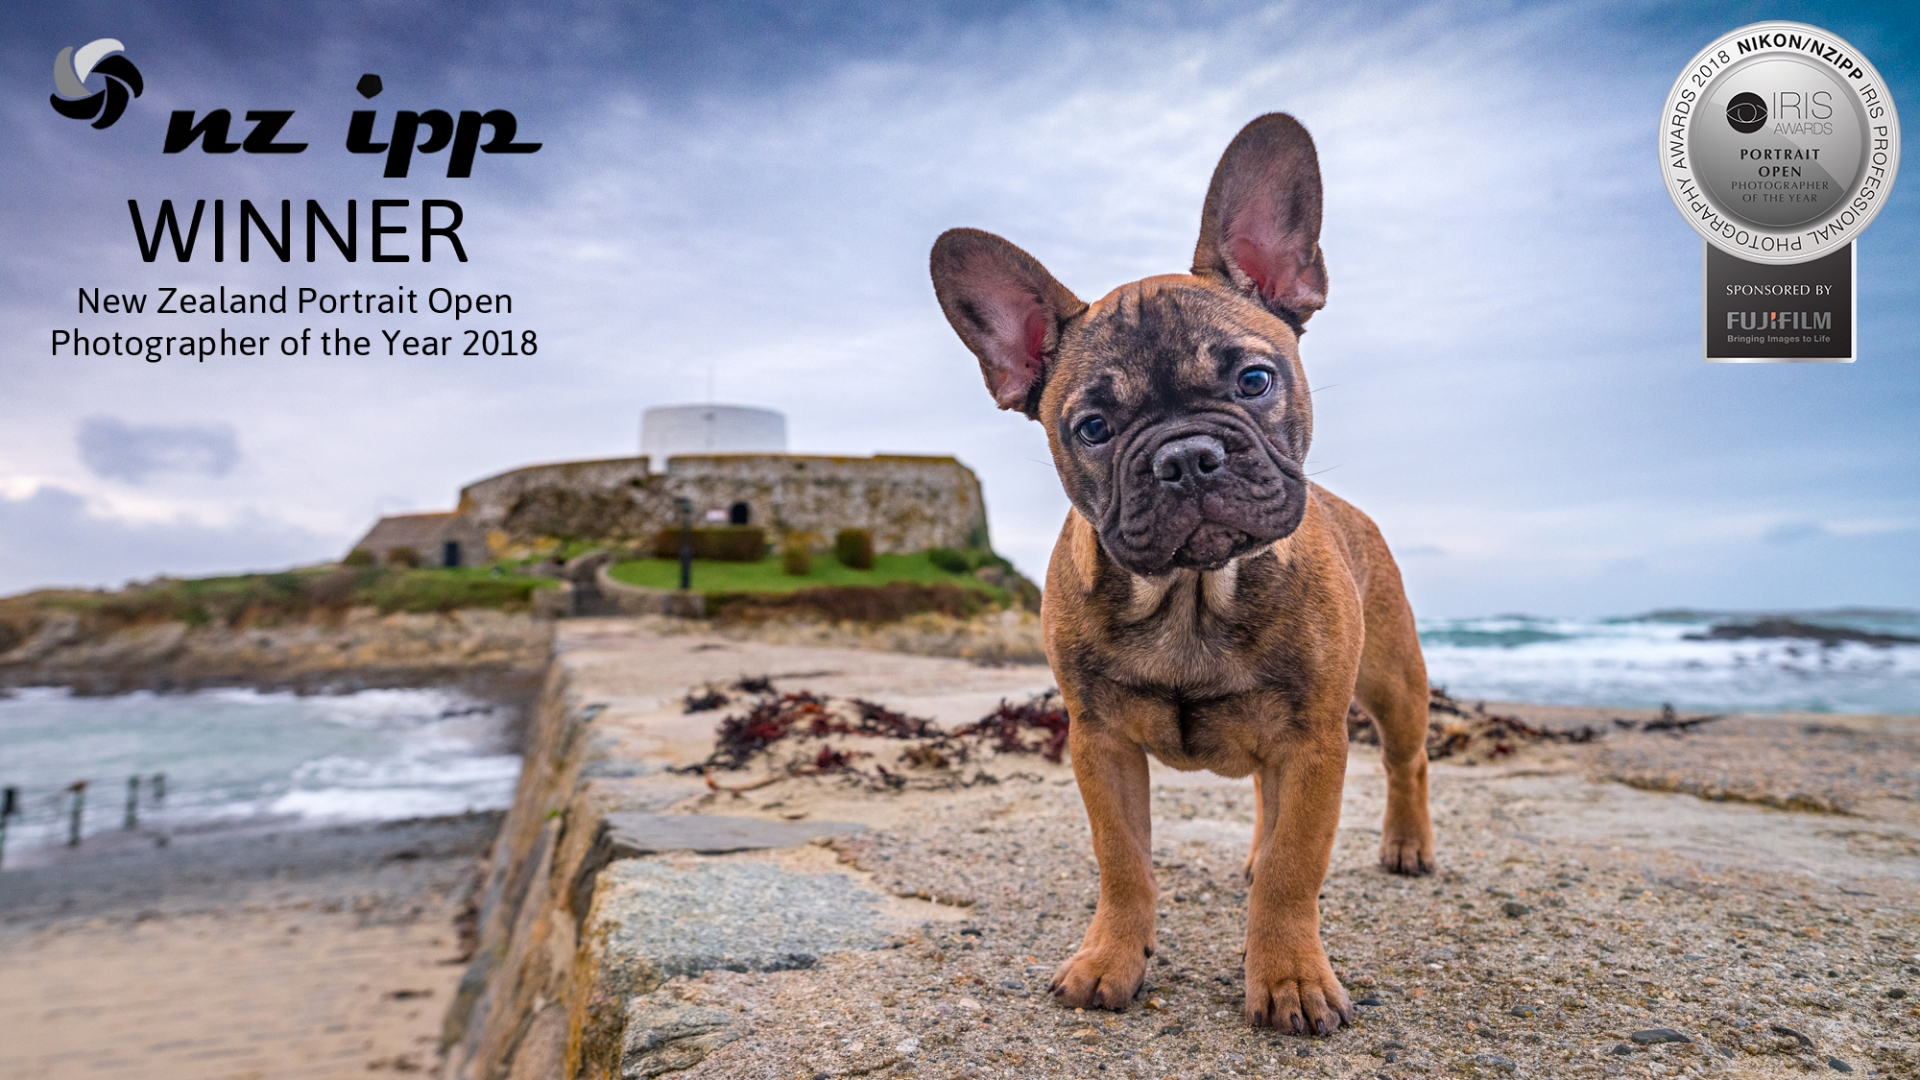 09 Portrait Photographer of the Year French bulldog guernsey fory grey cup saucer